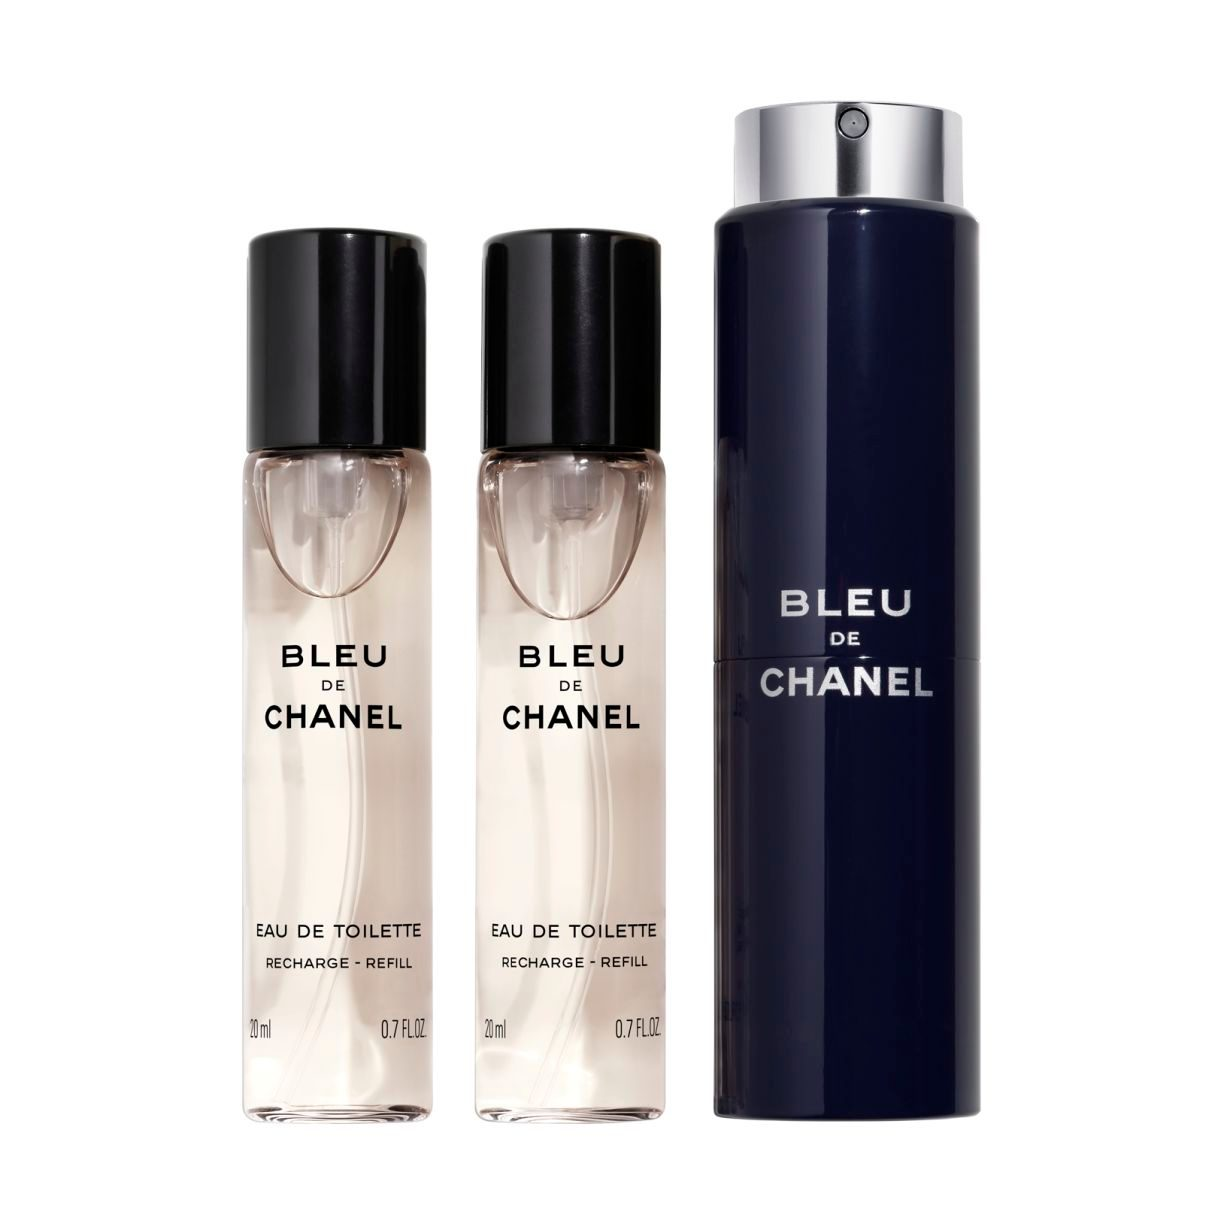 BLEU DE CHANEL EAU DE TOILETTE REFILLABLE TRAVEL SPRAY